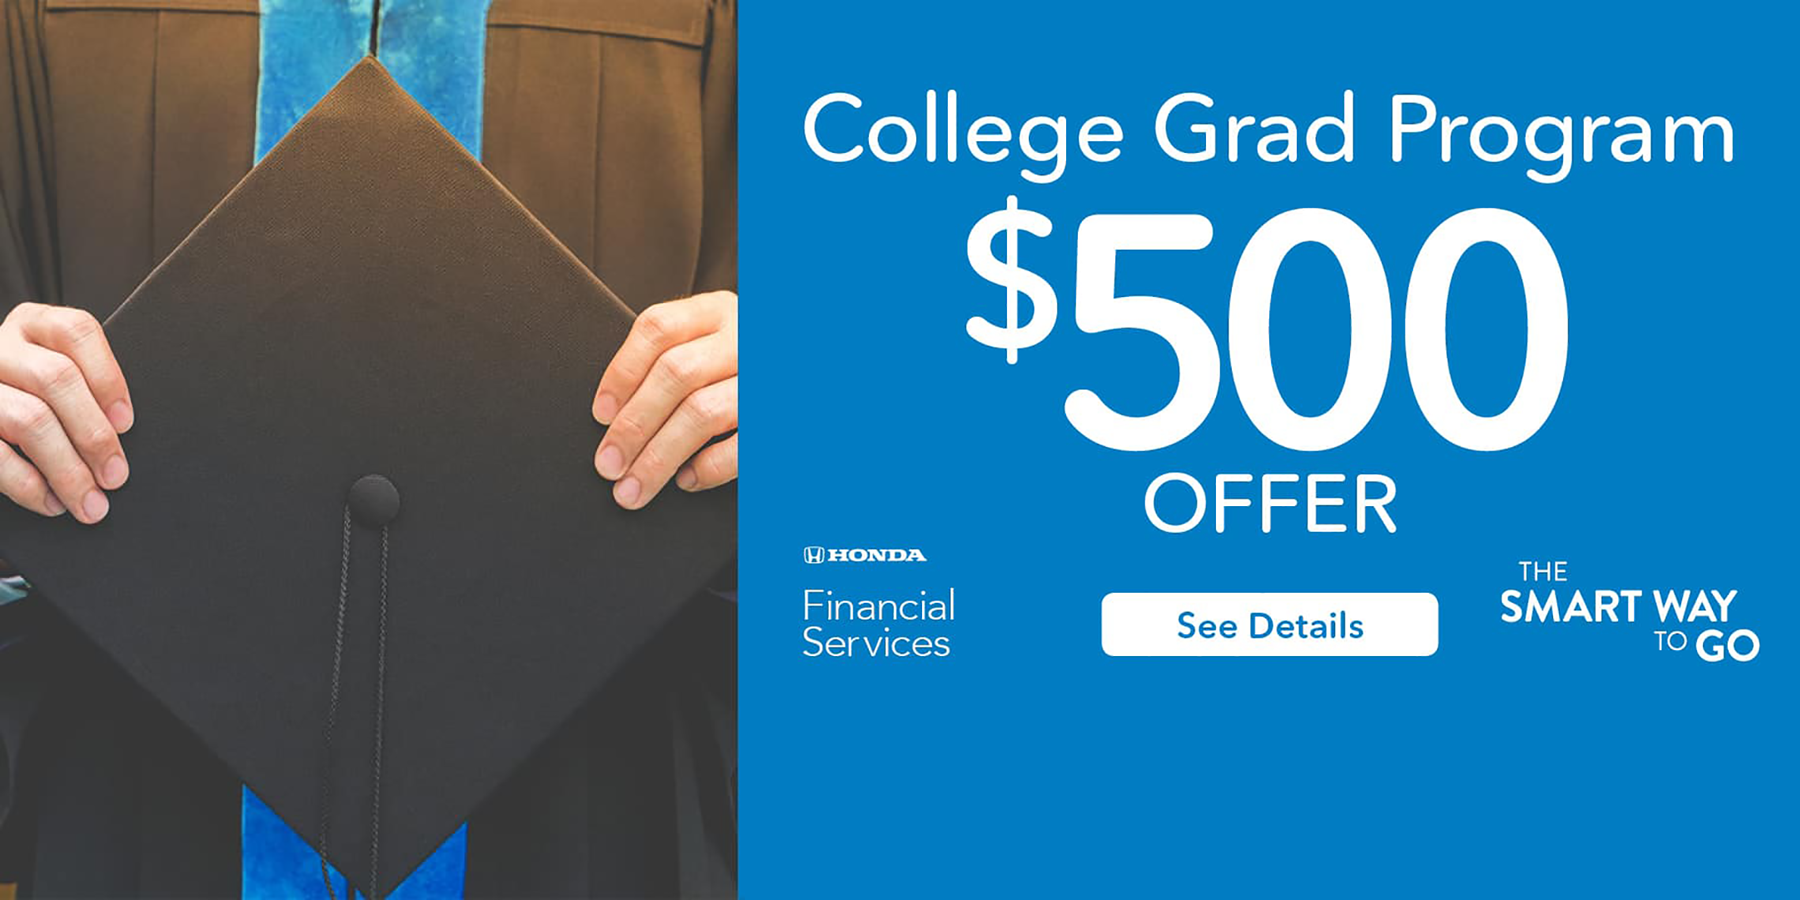 2019 Honda College Graduate Program HP Slide